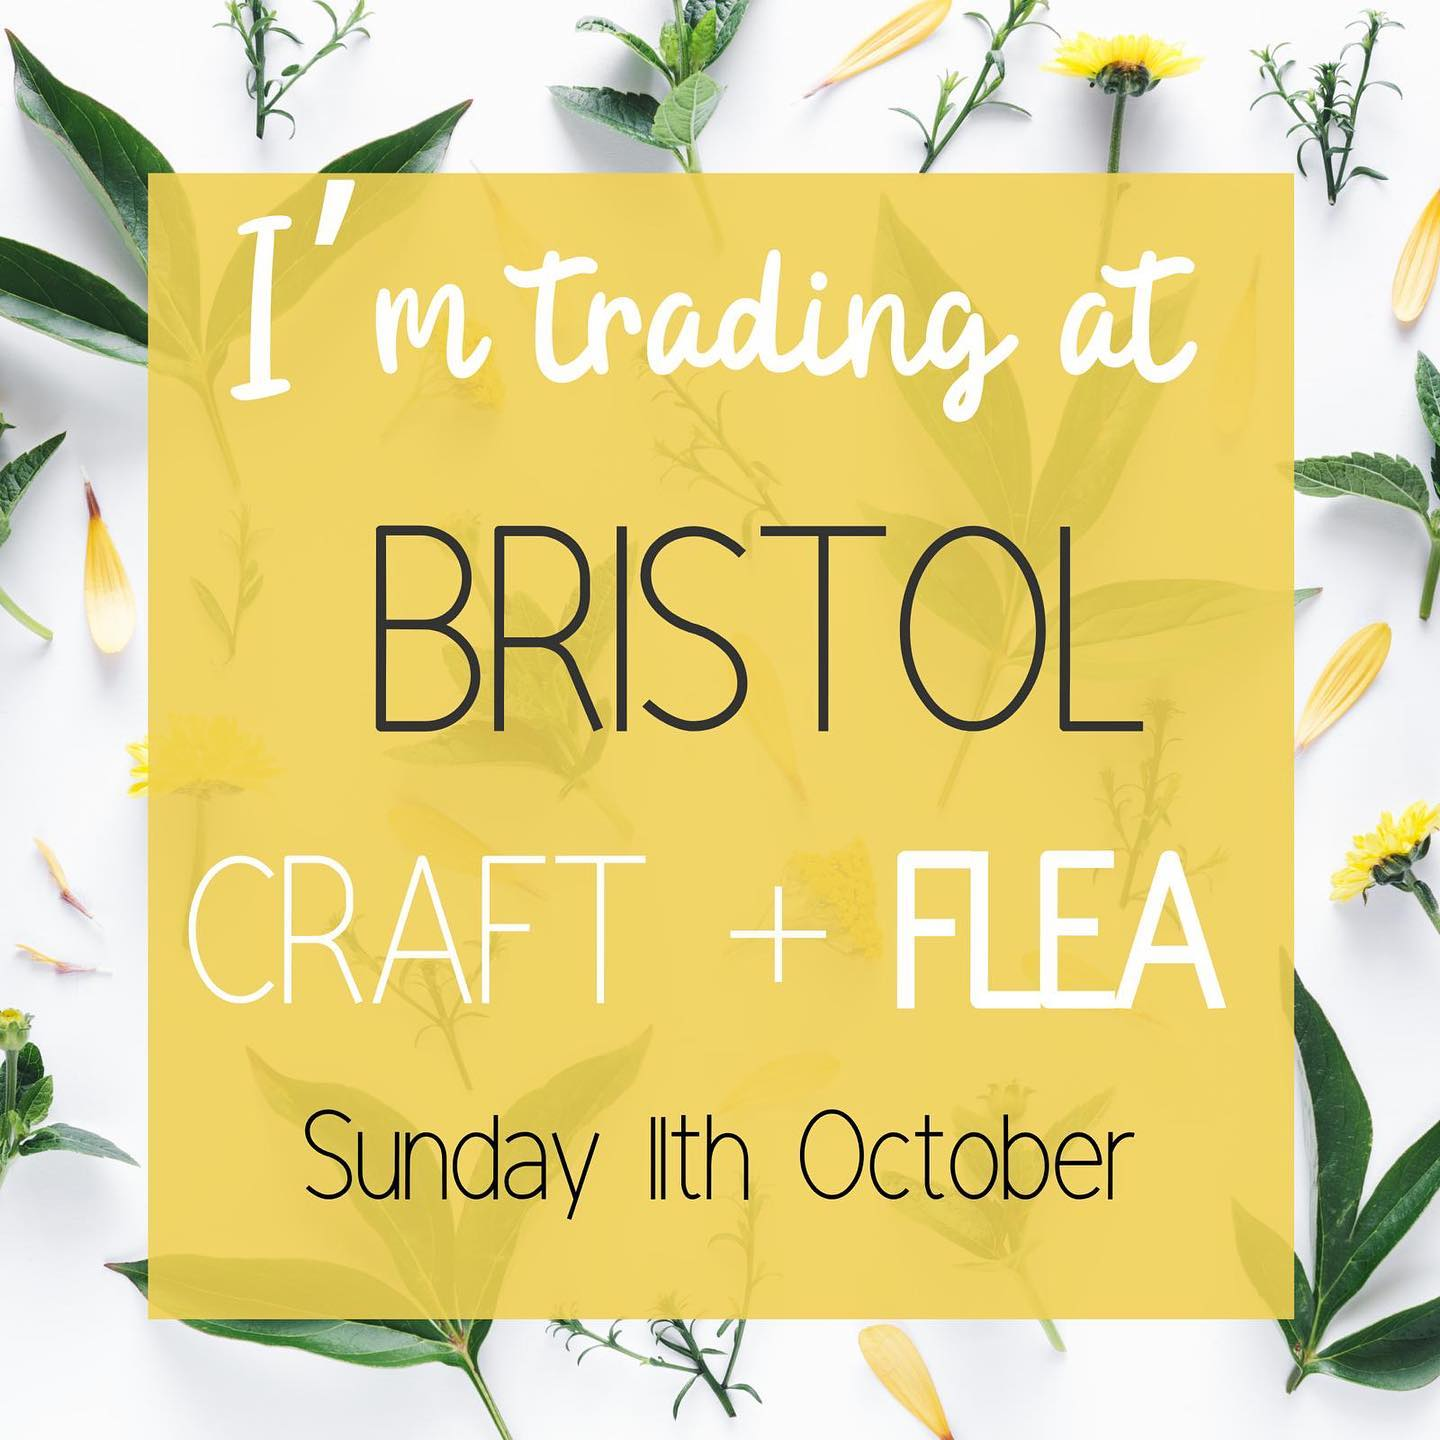 We are excited to be booked to trade at the Bristol @thecraftandflea in October. It will be socially distanced and measures put in place to keep everybody safe. Paintworks is a fantastic venue and we love doing this event! The visitors are always so supportive and we love chatting with fellow traders and looking at their lovely products. I almost always come home with a new purchase ️....#Sundaymarket #bristol #craftandflea #artisan #homewares #craft #flea #thenewnormal #supportsmallbusinesses #shophandmade #shopsmall #gingerandtweed #follow #share #like #seeyouthere #paintworksbristol